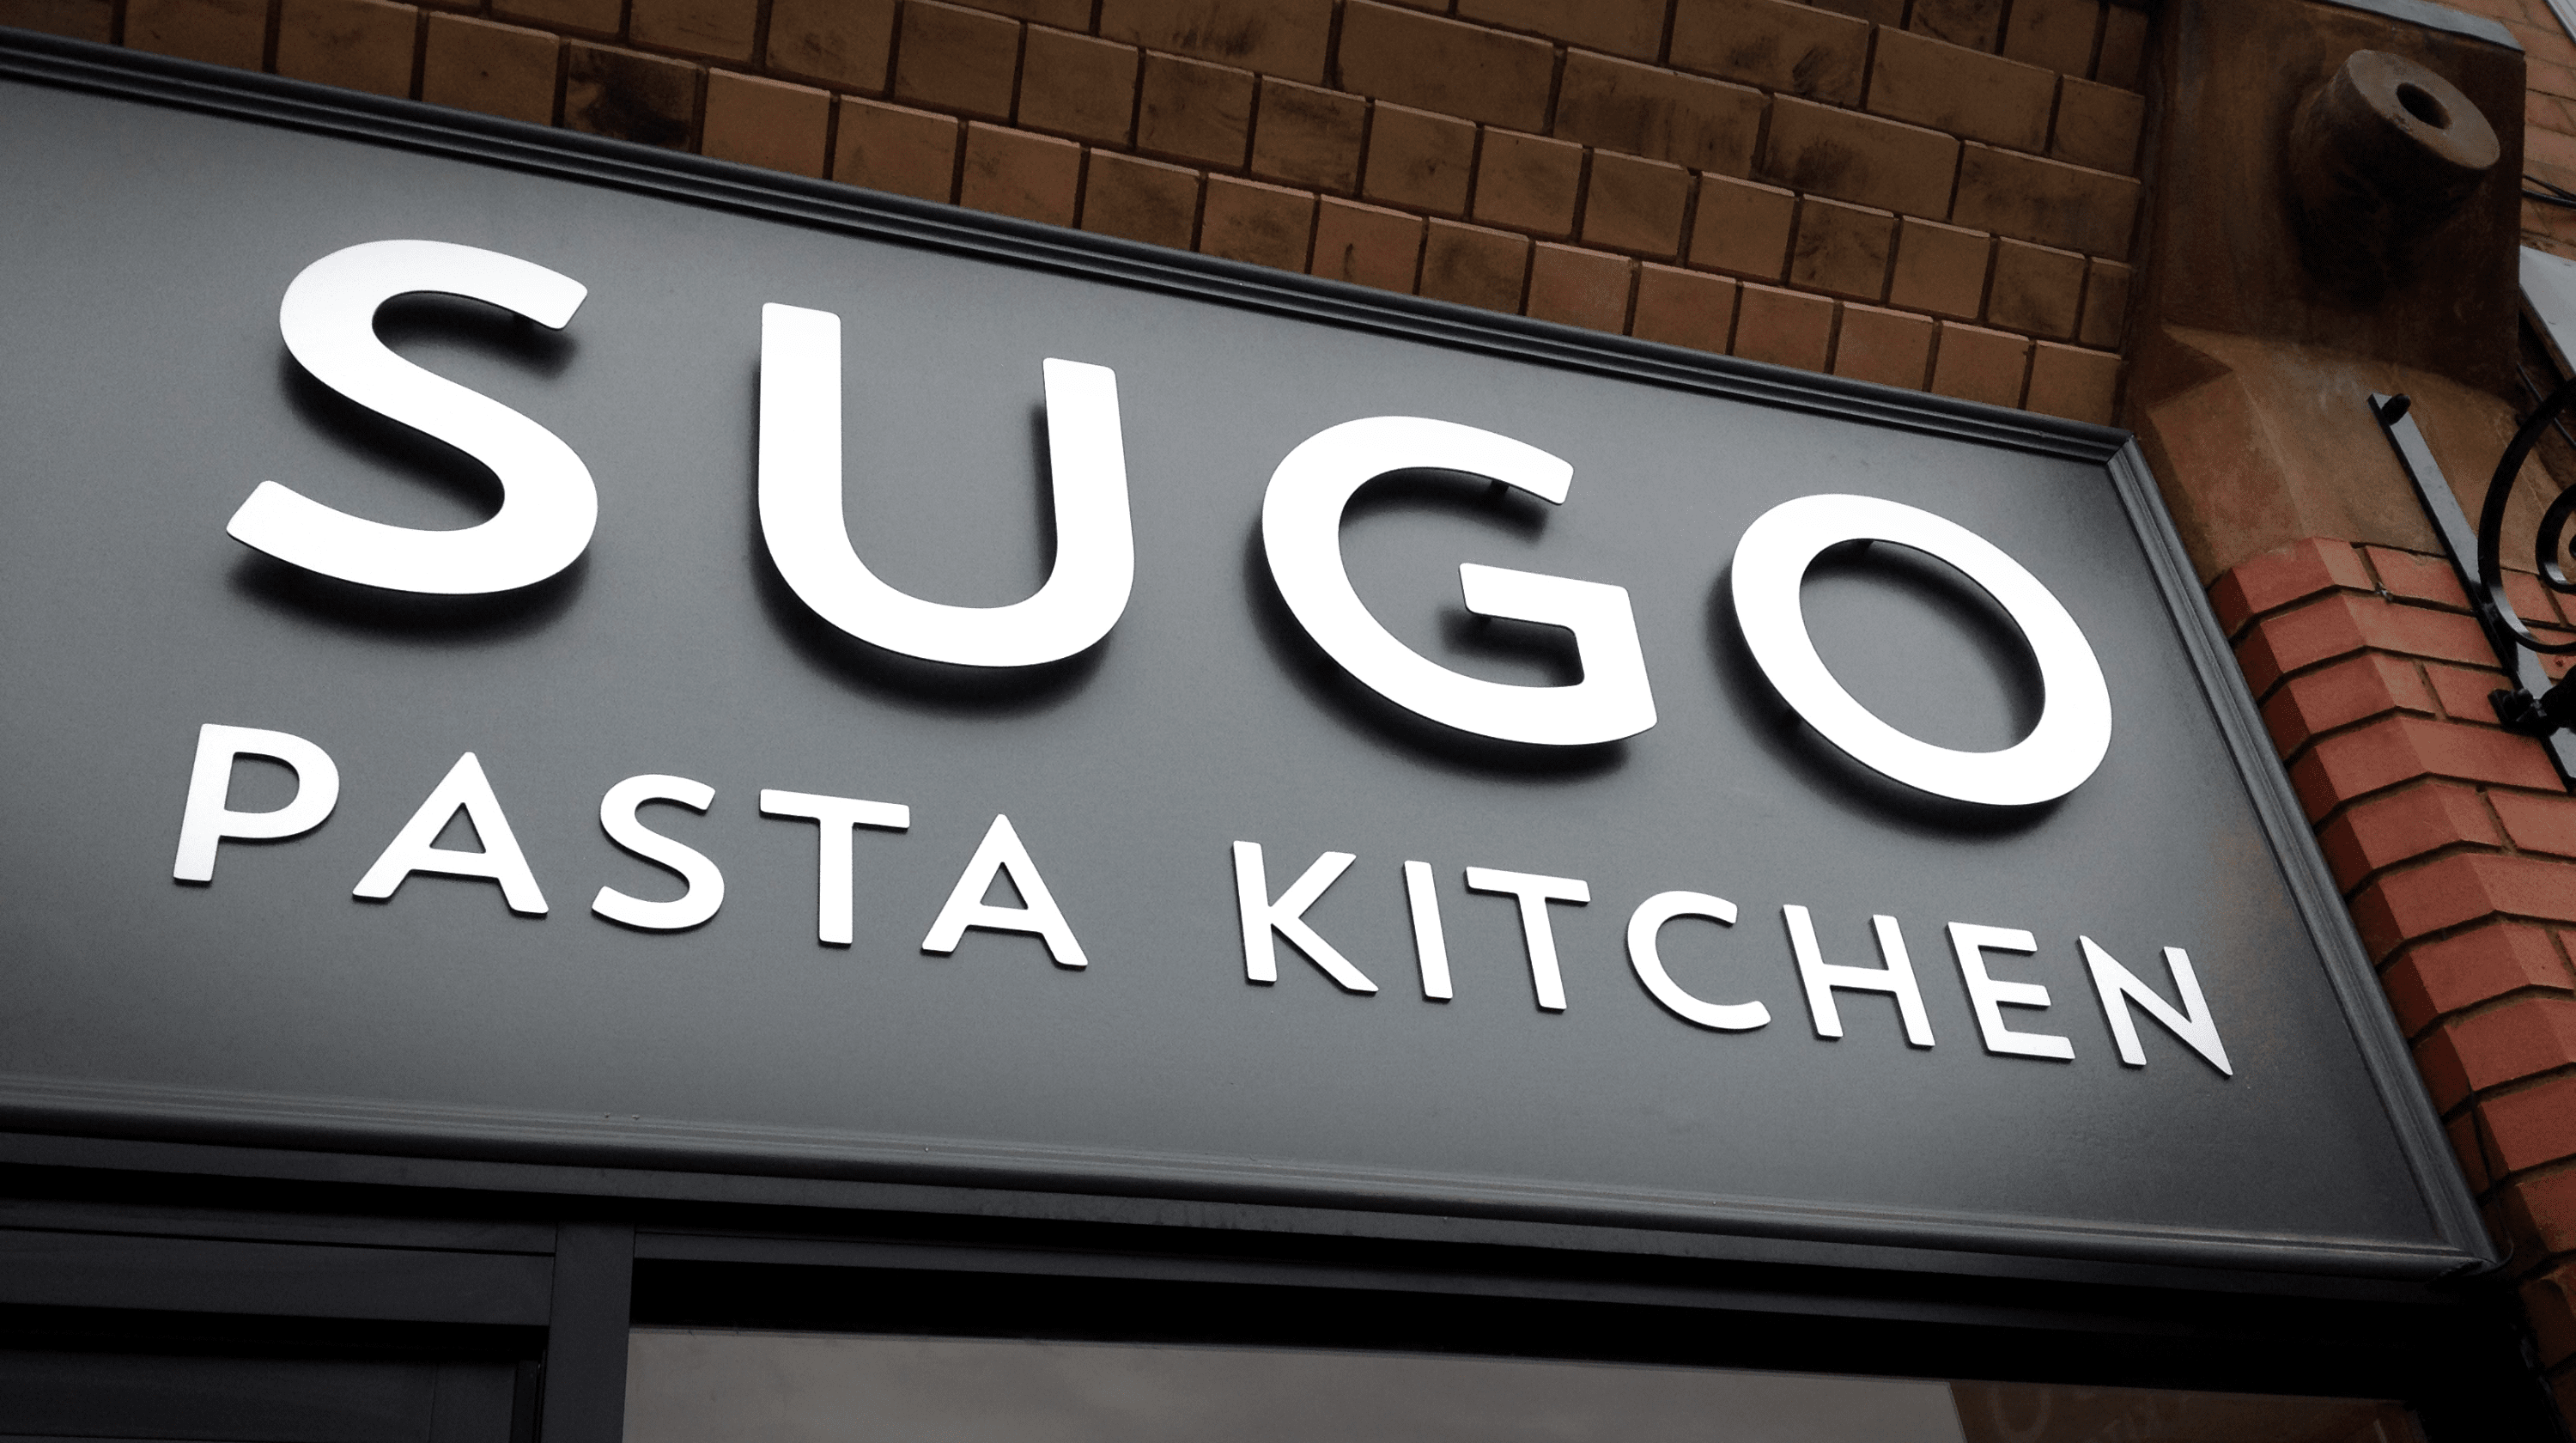 Sugo - branding identity and website design